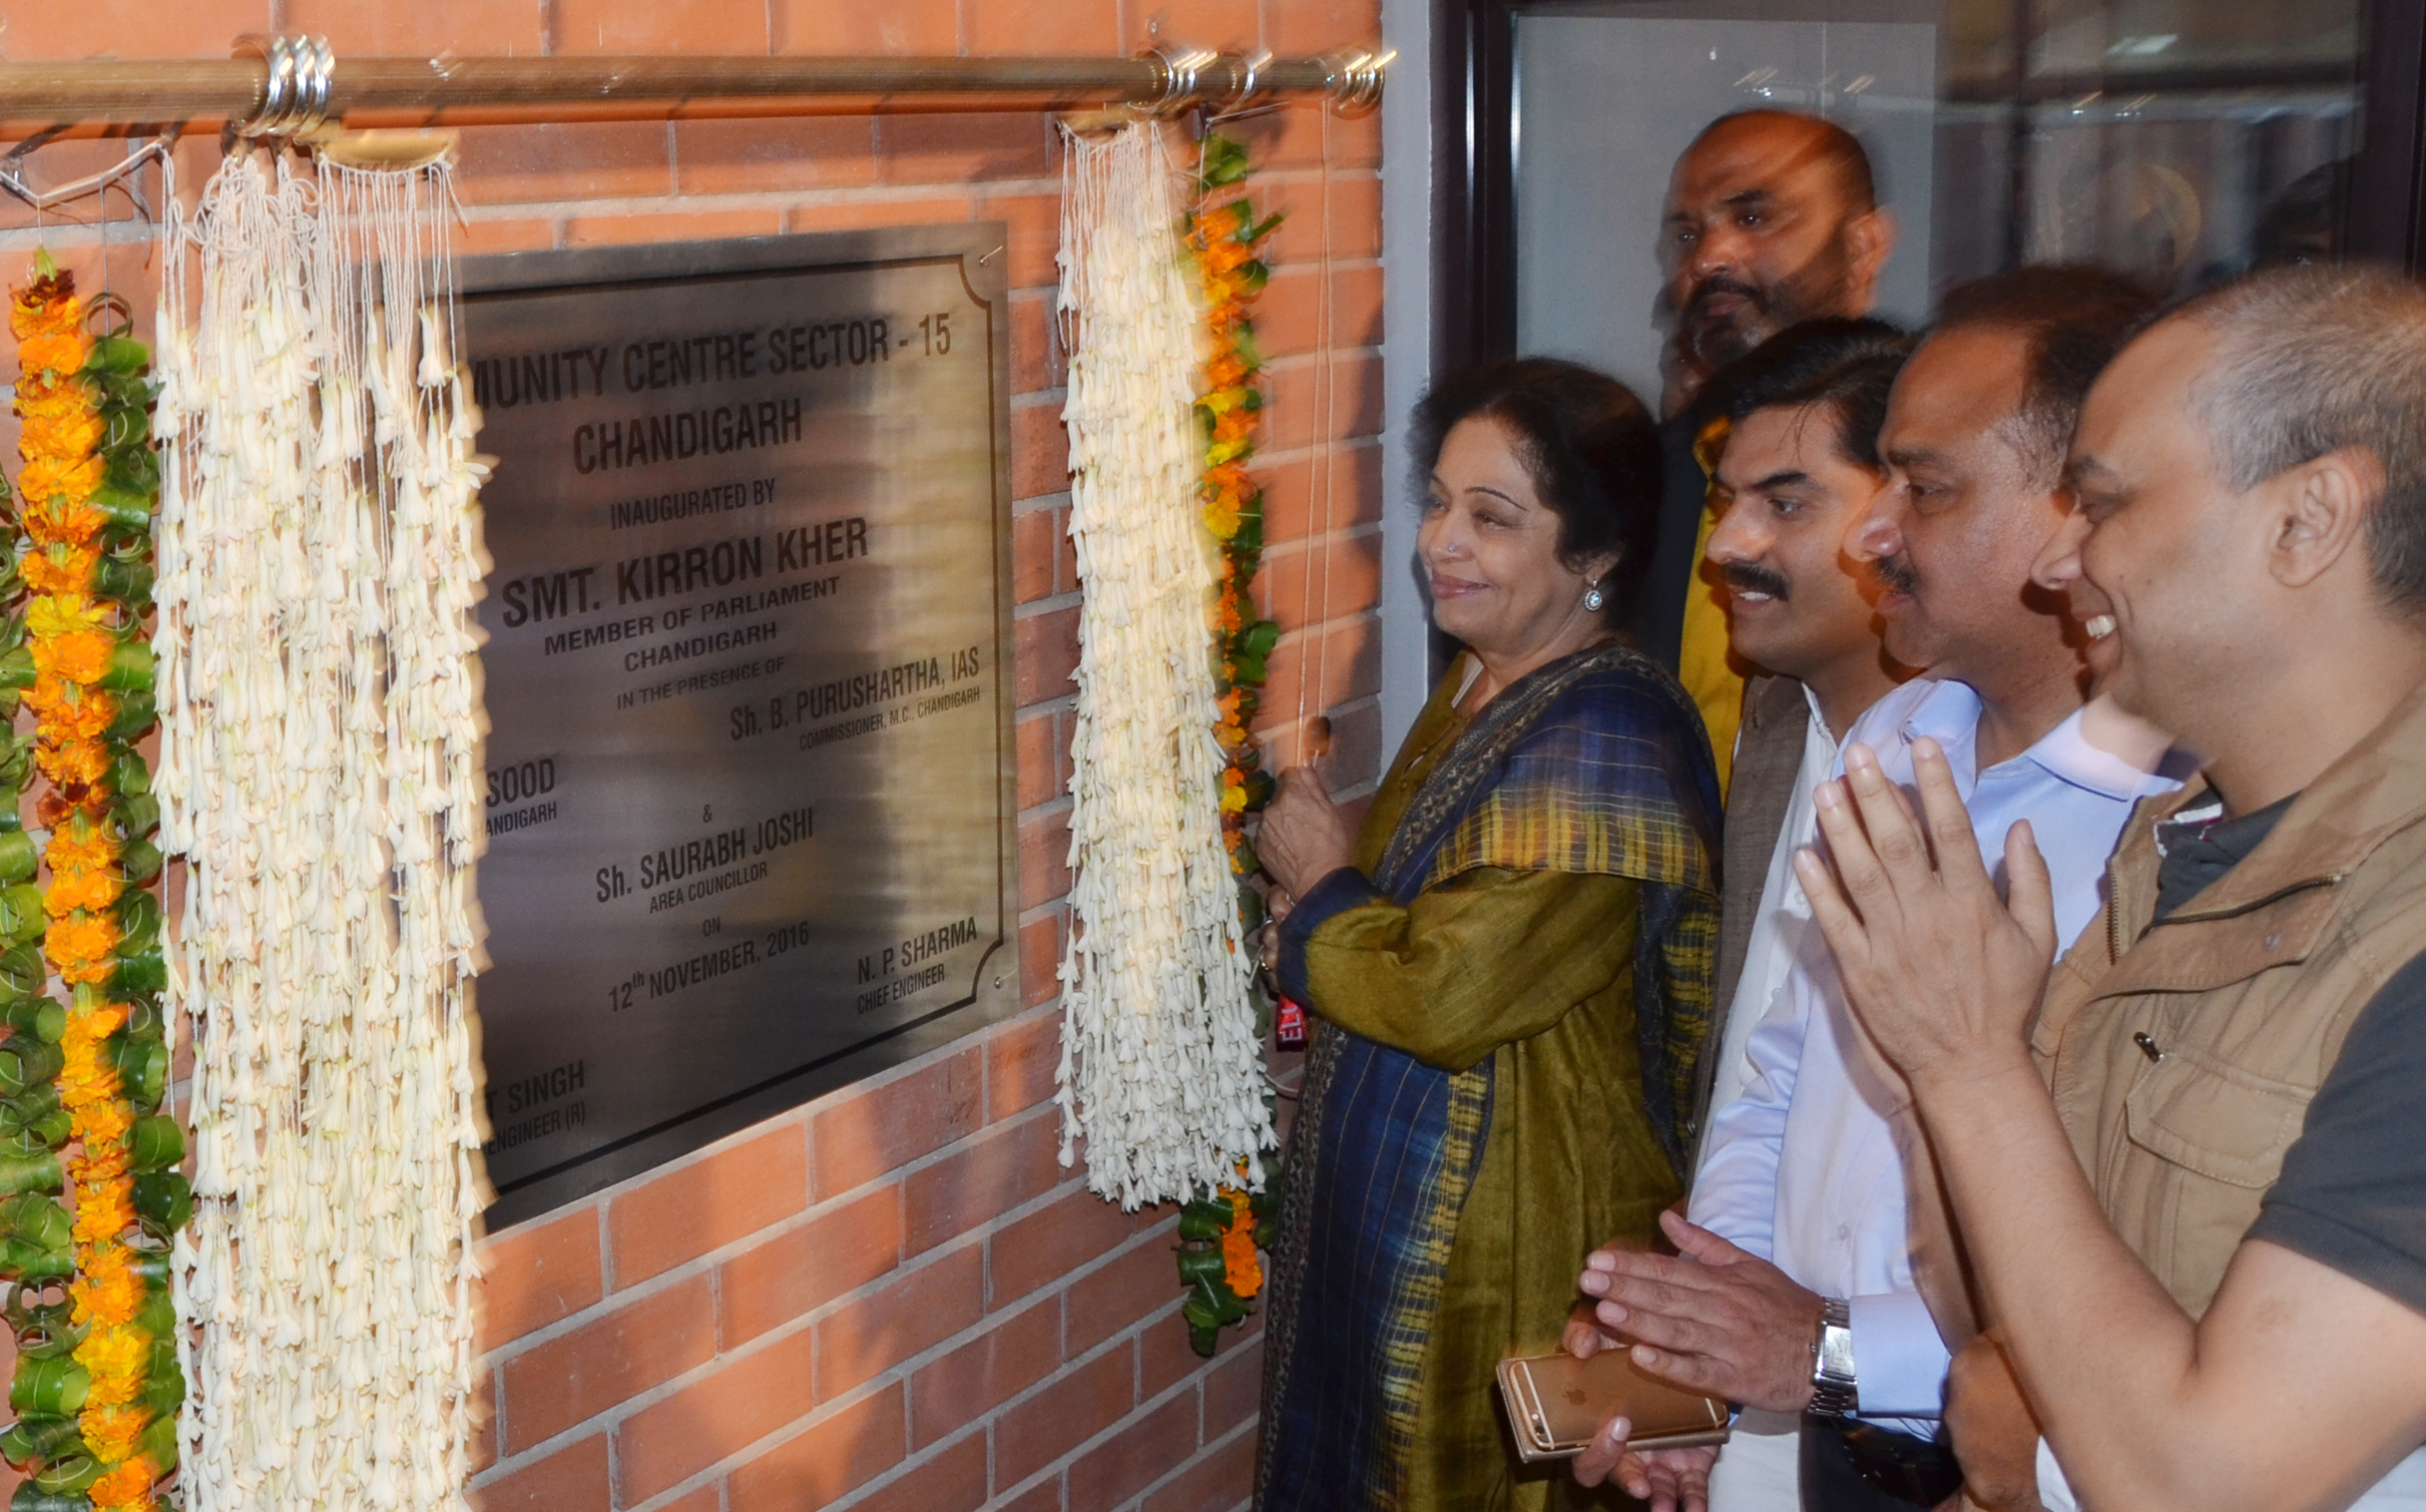 the opening of dispensaries was inaugurated by mp kher